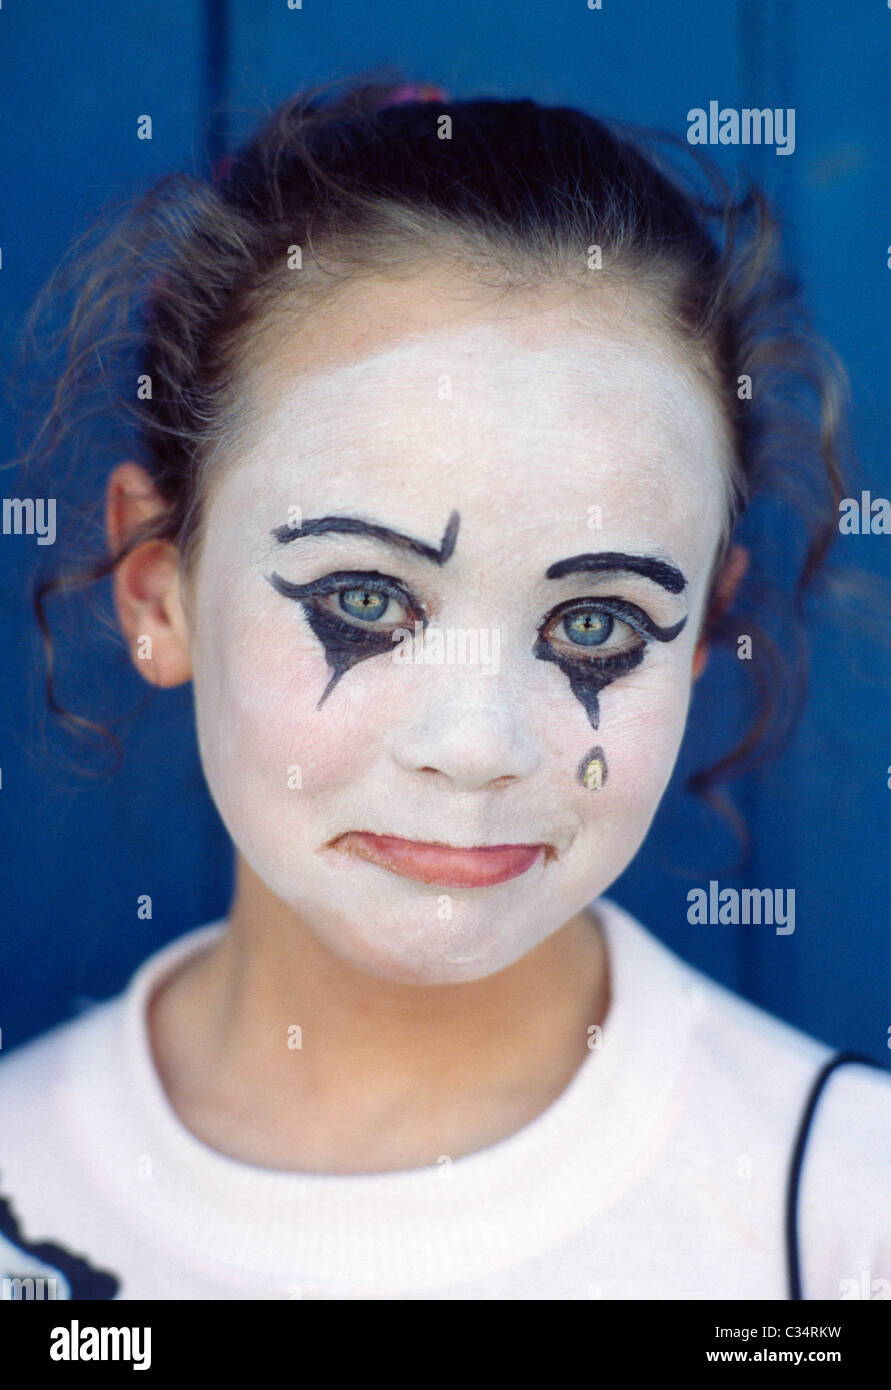 Portrait Of A Young Girl Wearing Sad Clown Makeup - Stock Image